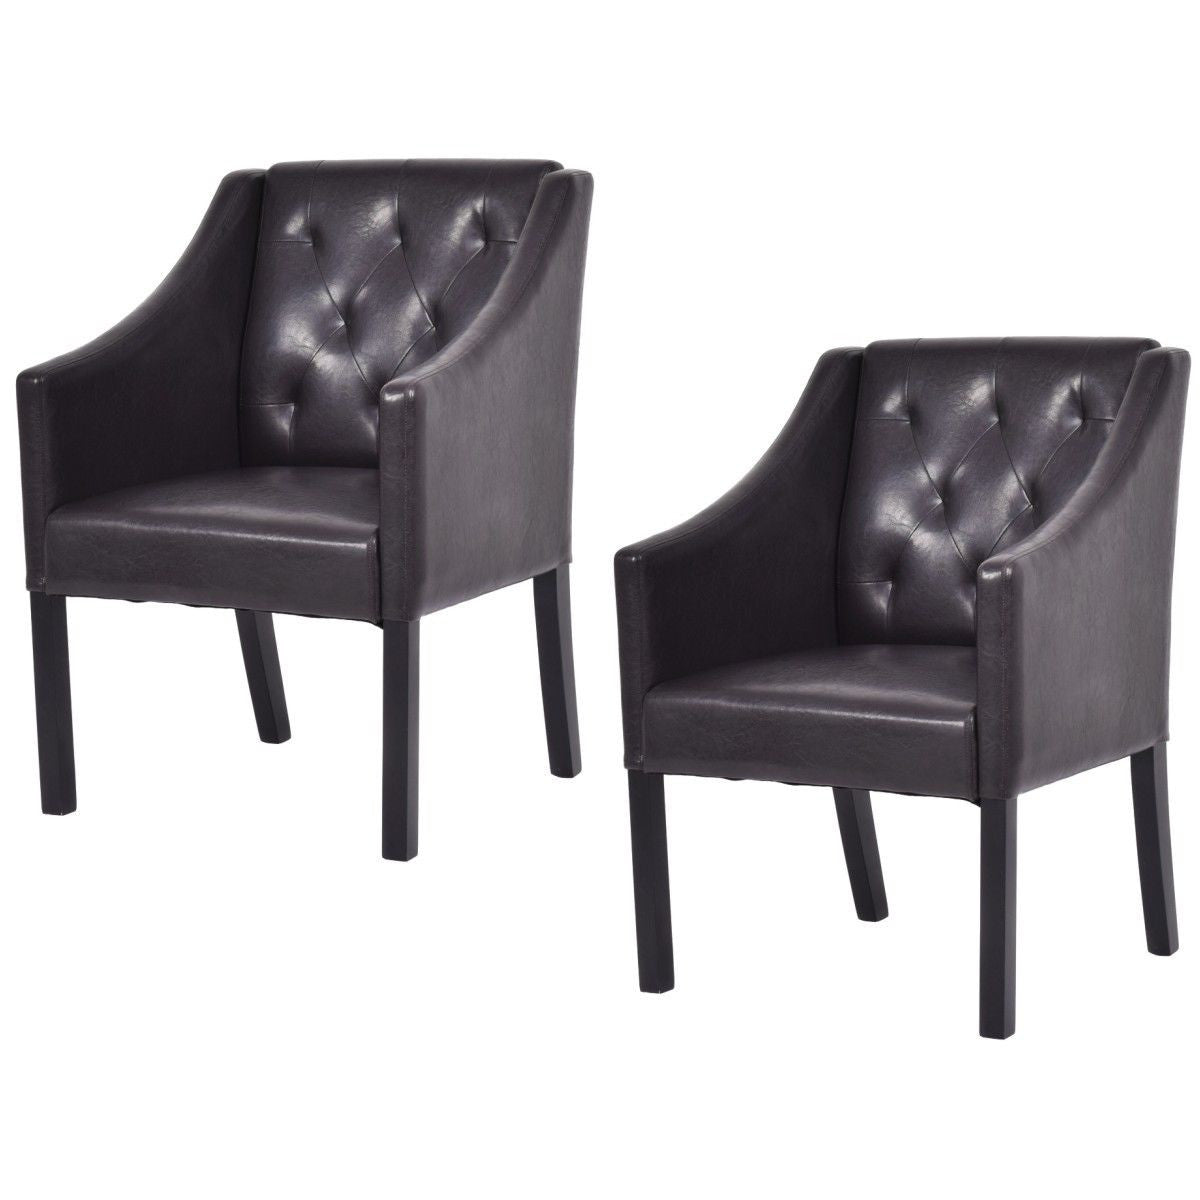 2 Tufted Accent Arm Chair PU Leather